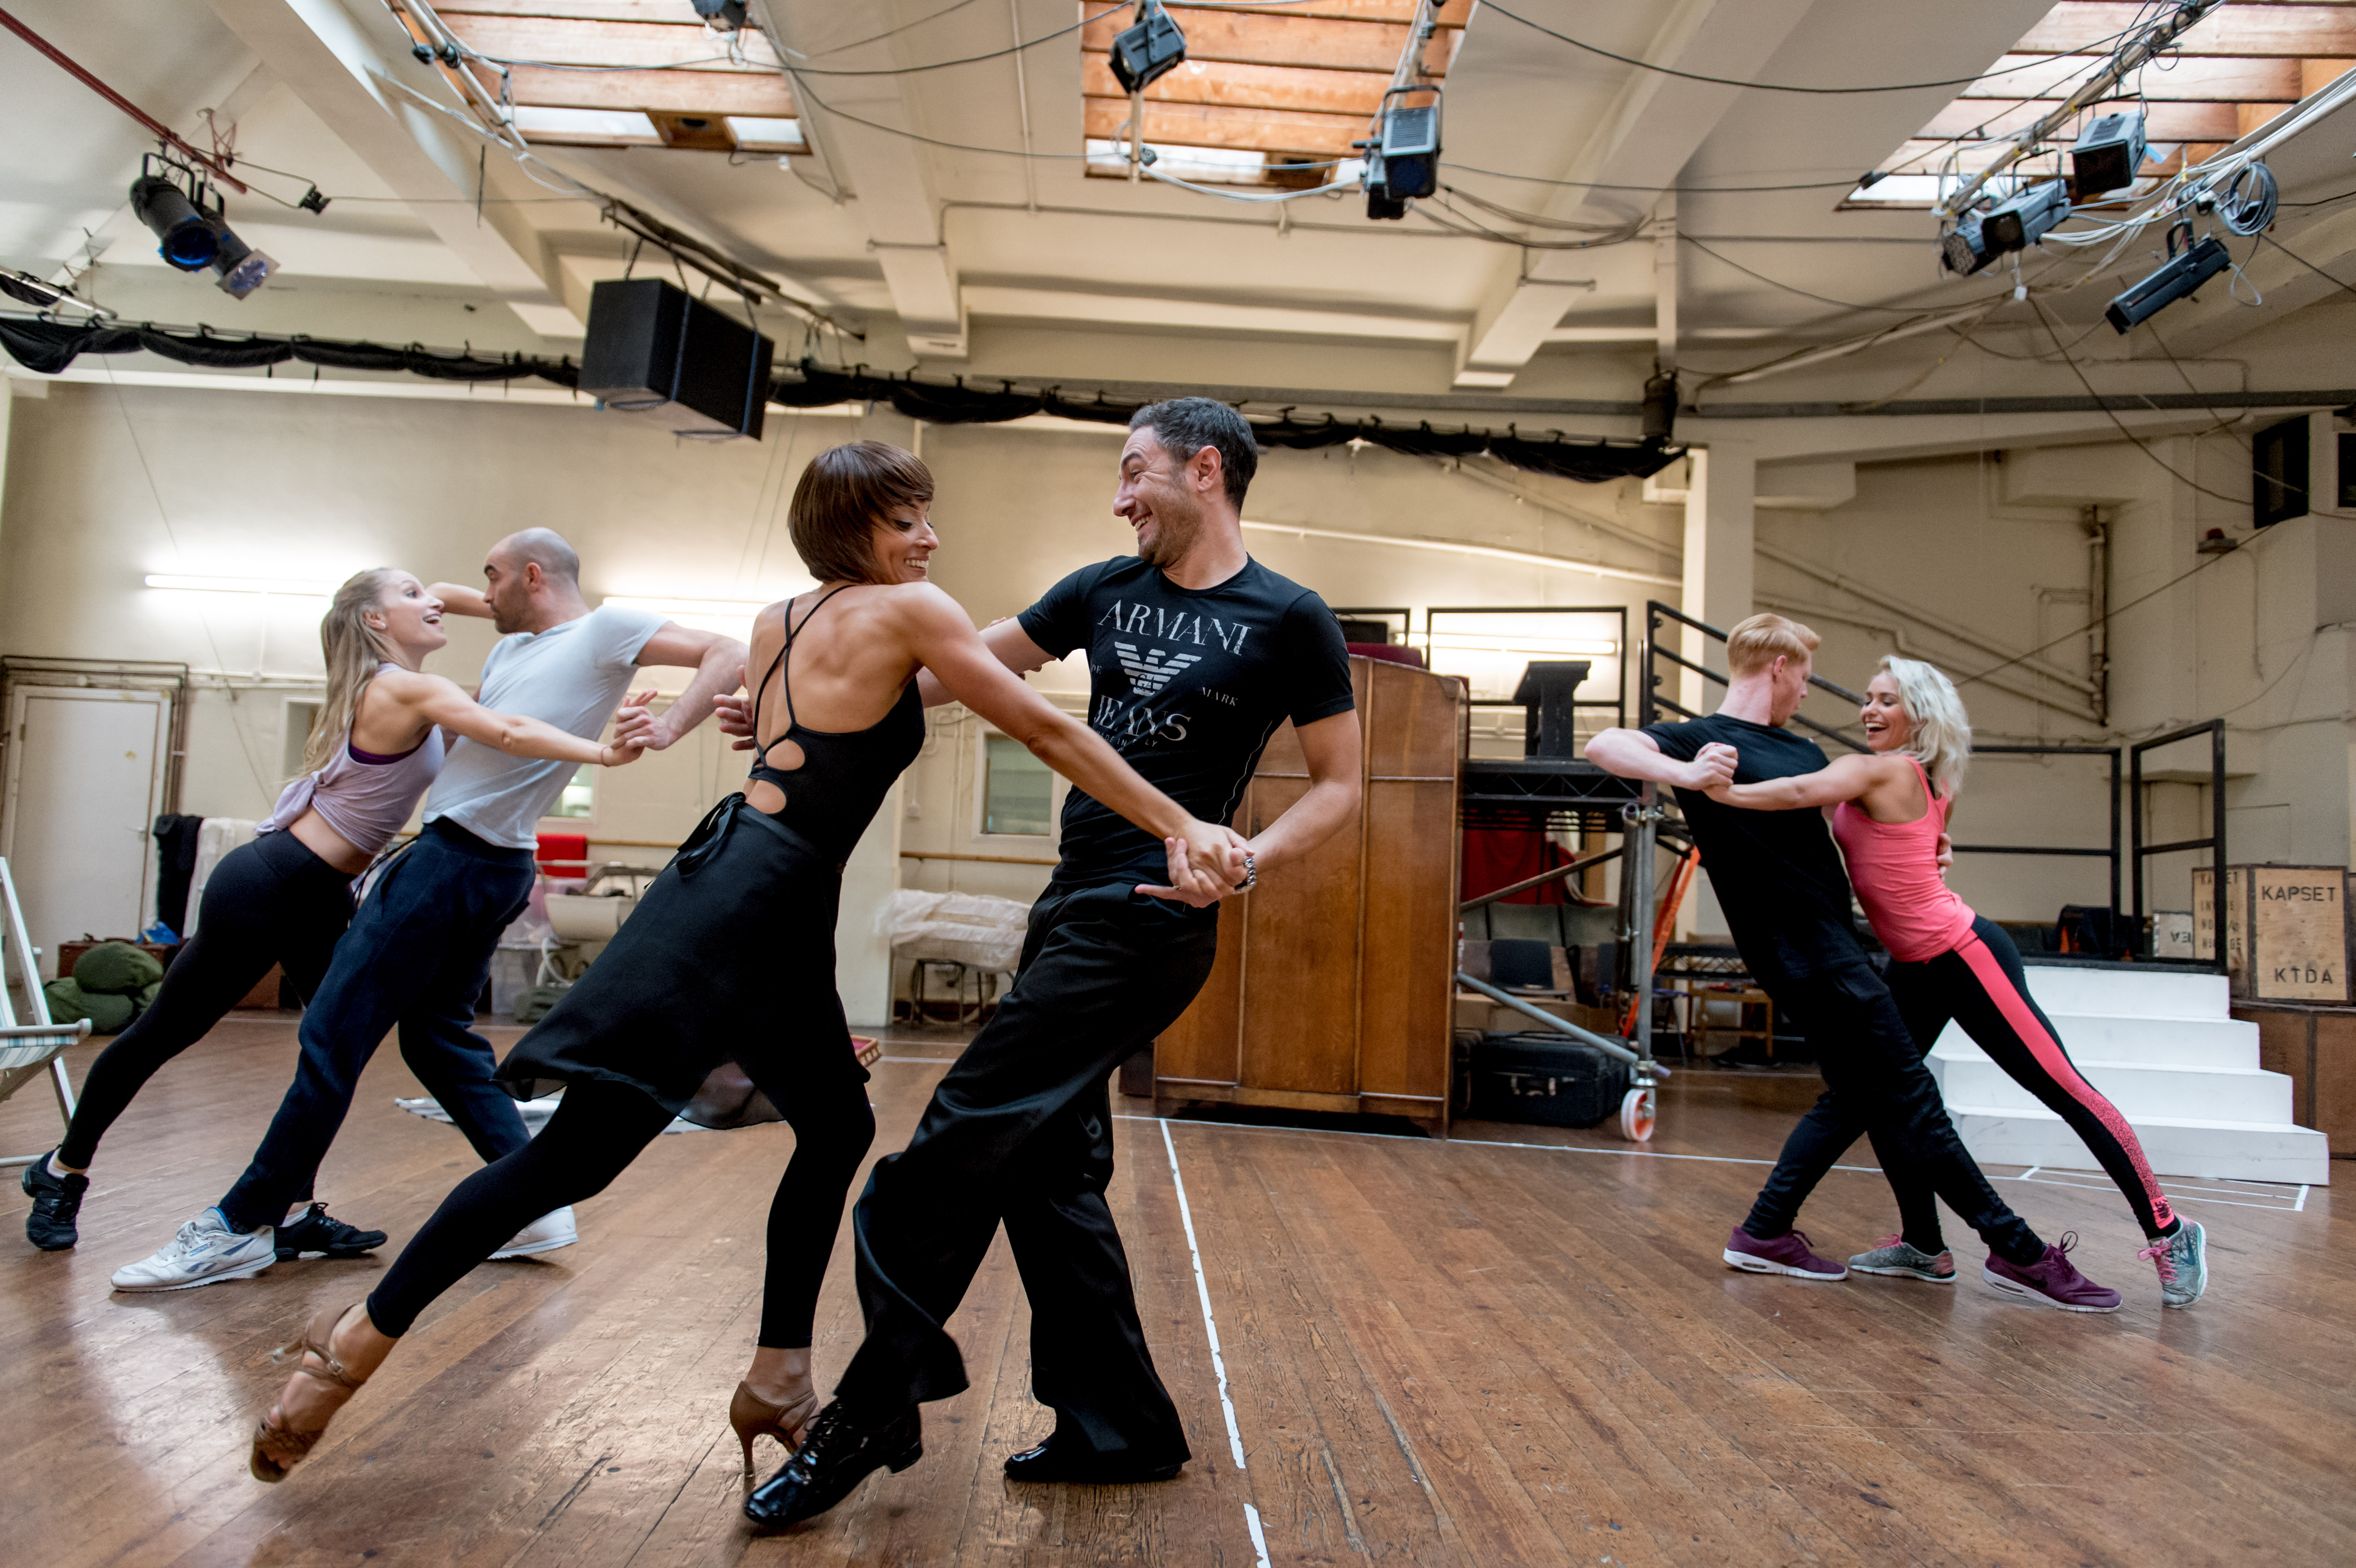 Rehearsals with Vincent Simone and Flavia Cacace. Vincent and Flavia rehearse The Last Tango.